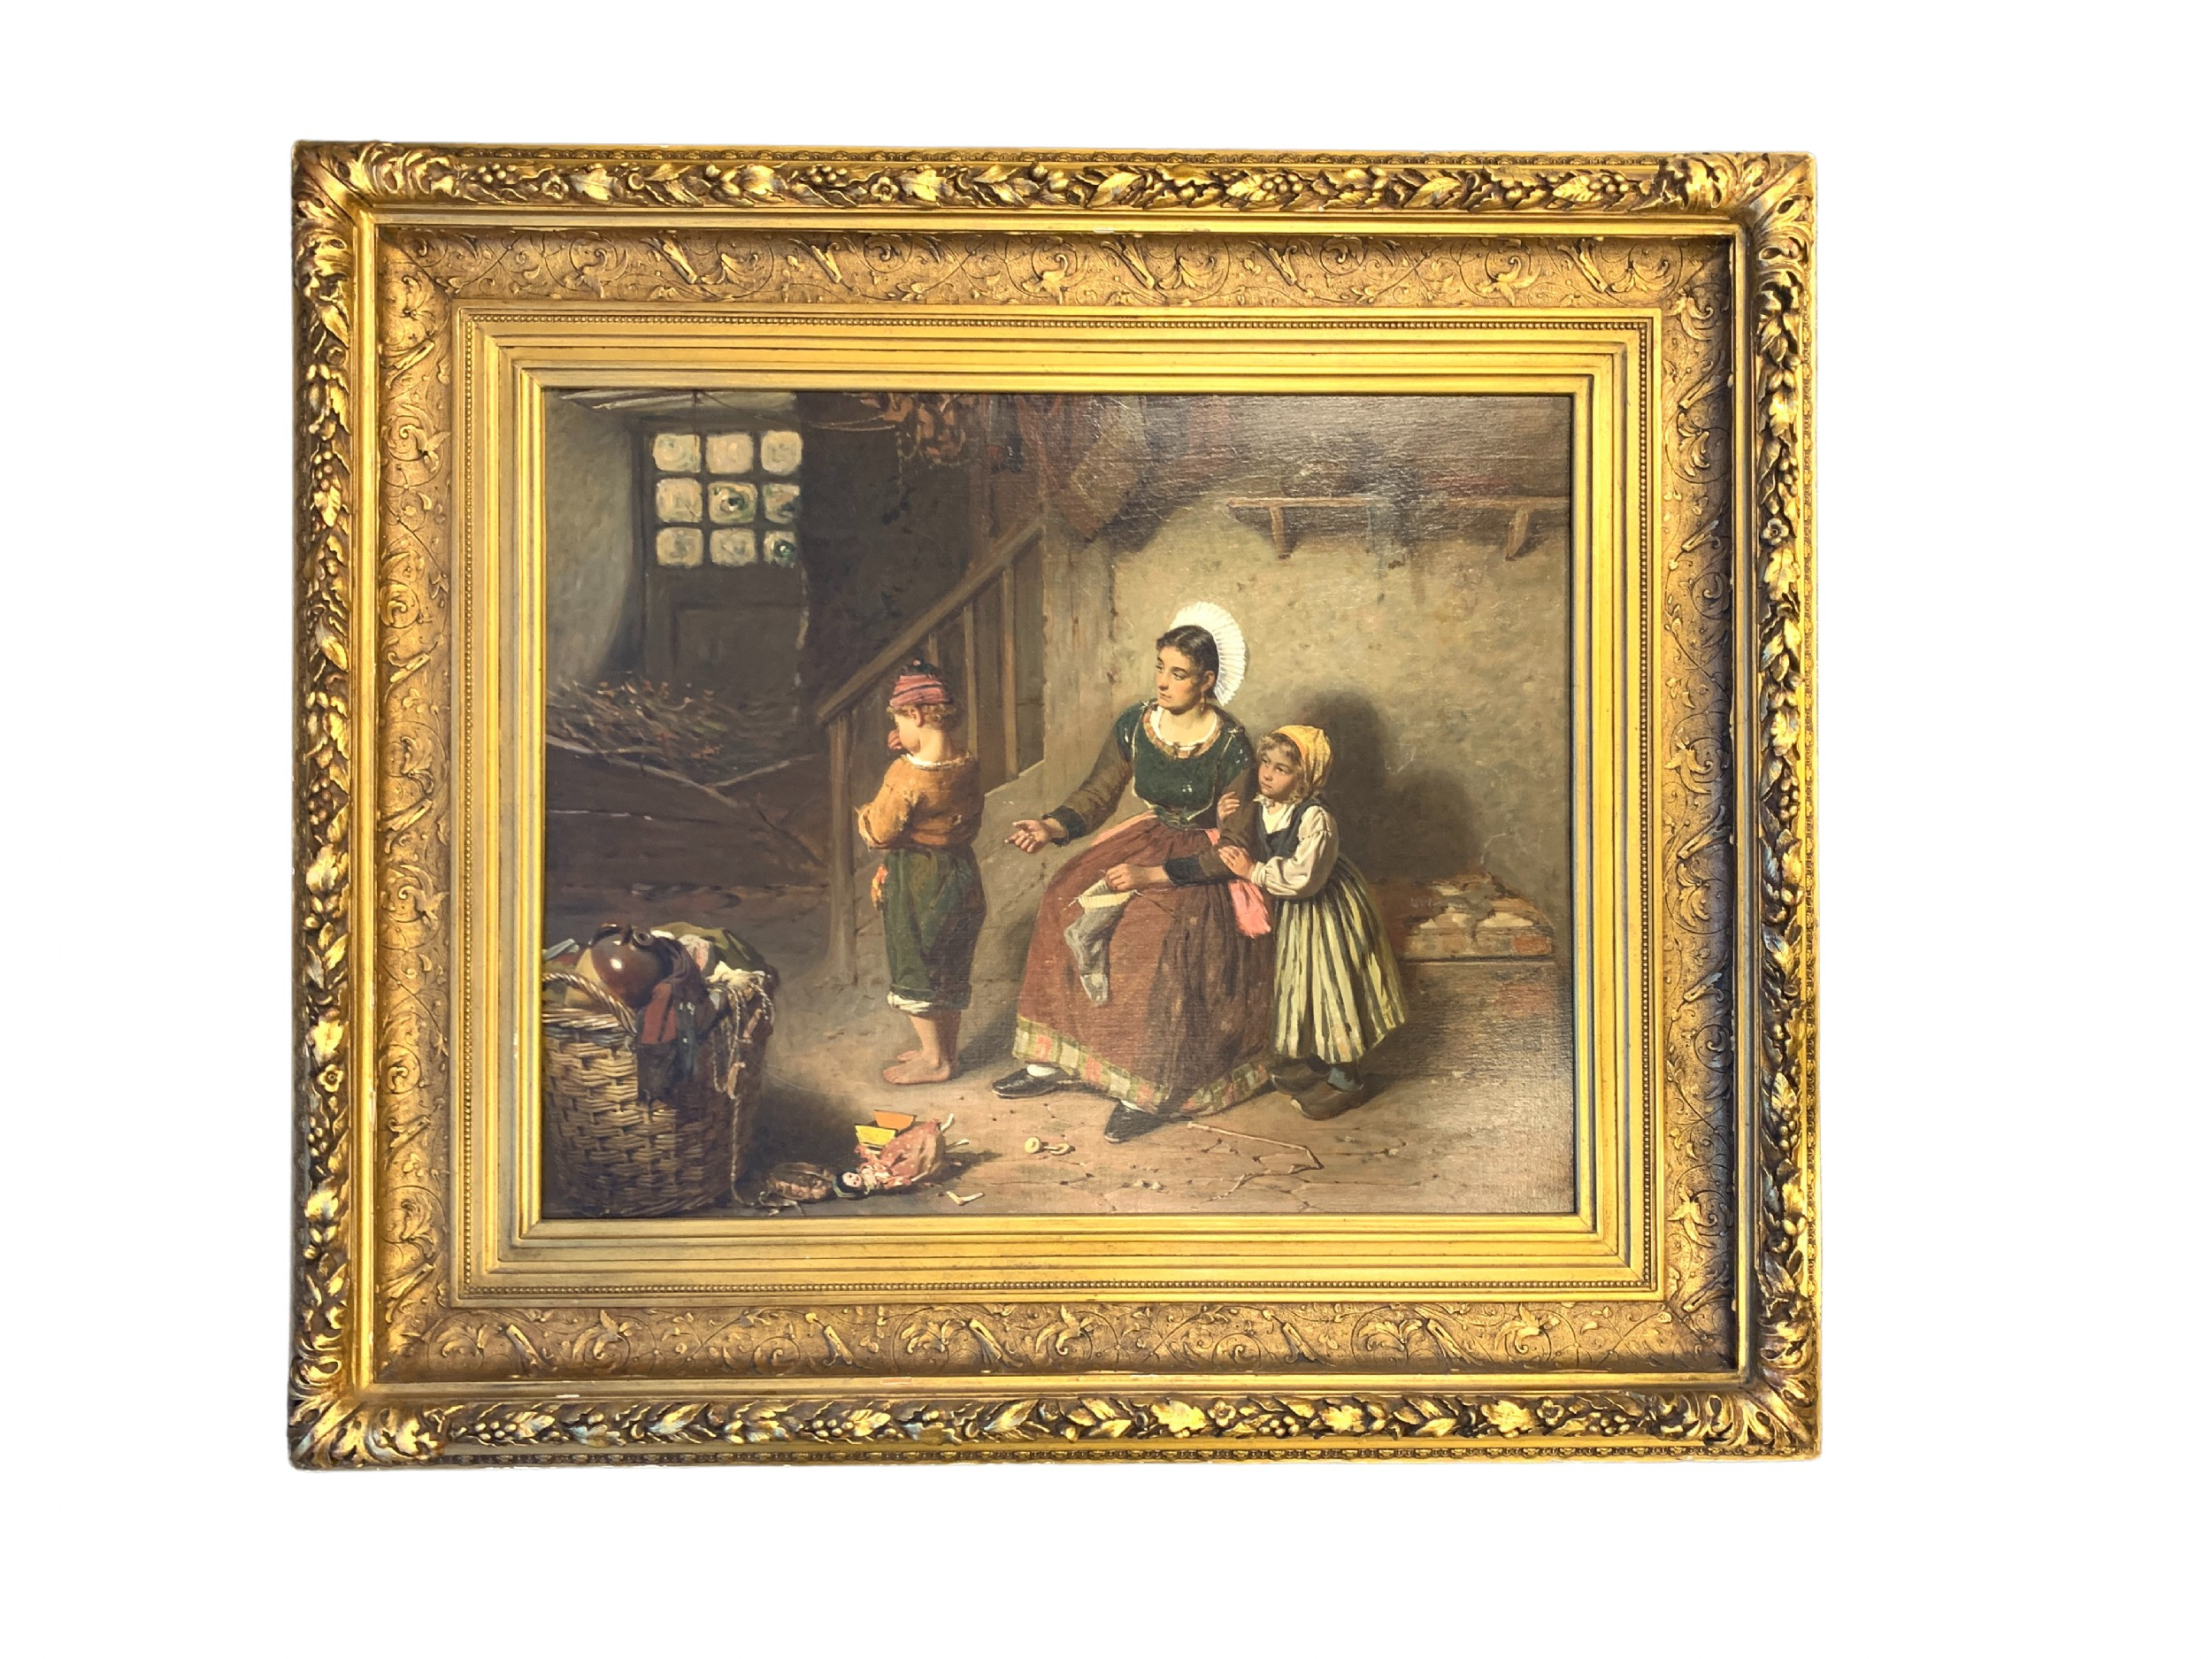 large northern european portrait of a peasant women and her children